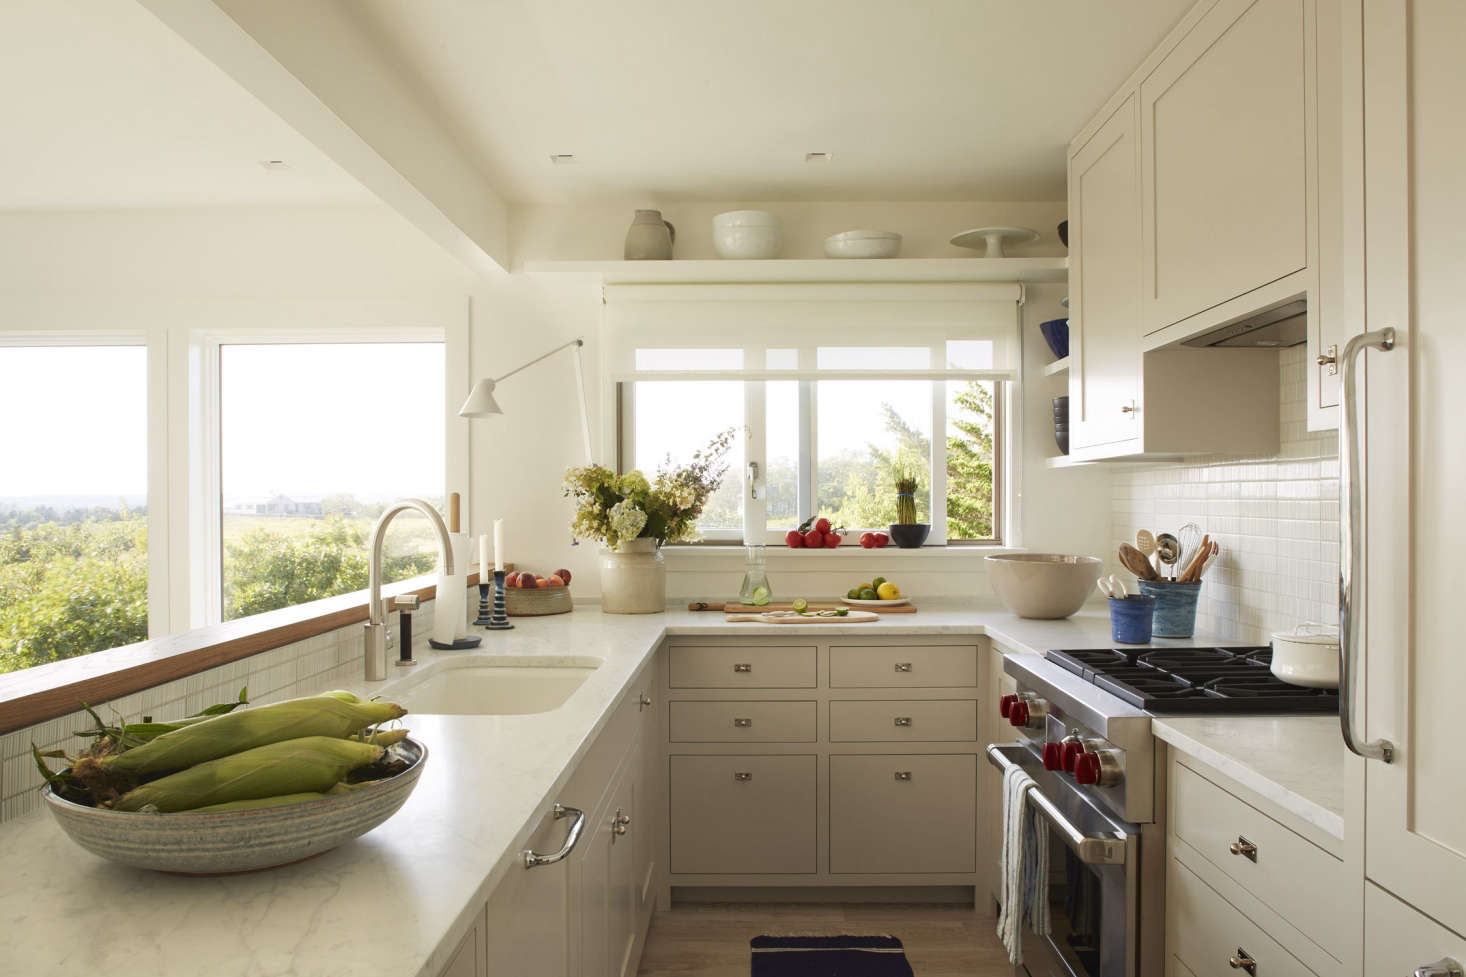 The kitchen, which overlooks the living room, kept its previous footprint but otherwise received a complete overhaul with Carrara marble countertops, a backsplash of textured white tile from Ann Sacks, and locally made Shaker-style cabinetry with Swedish hardware.